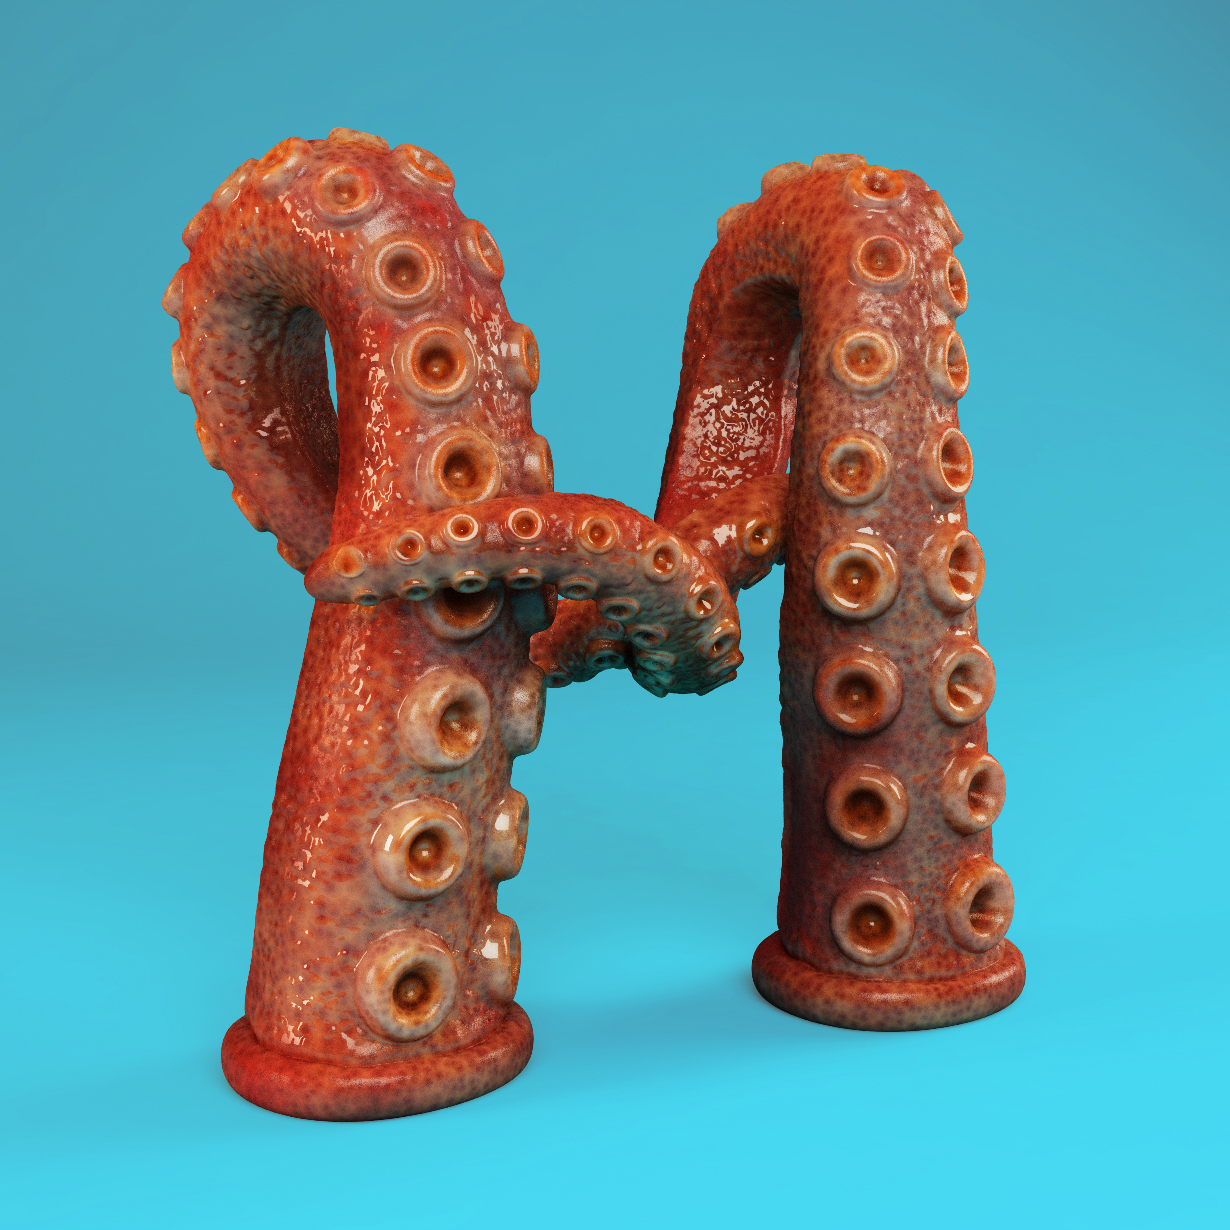 sculpted-alphabet-foreal-08